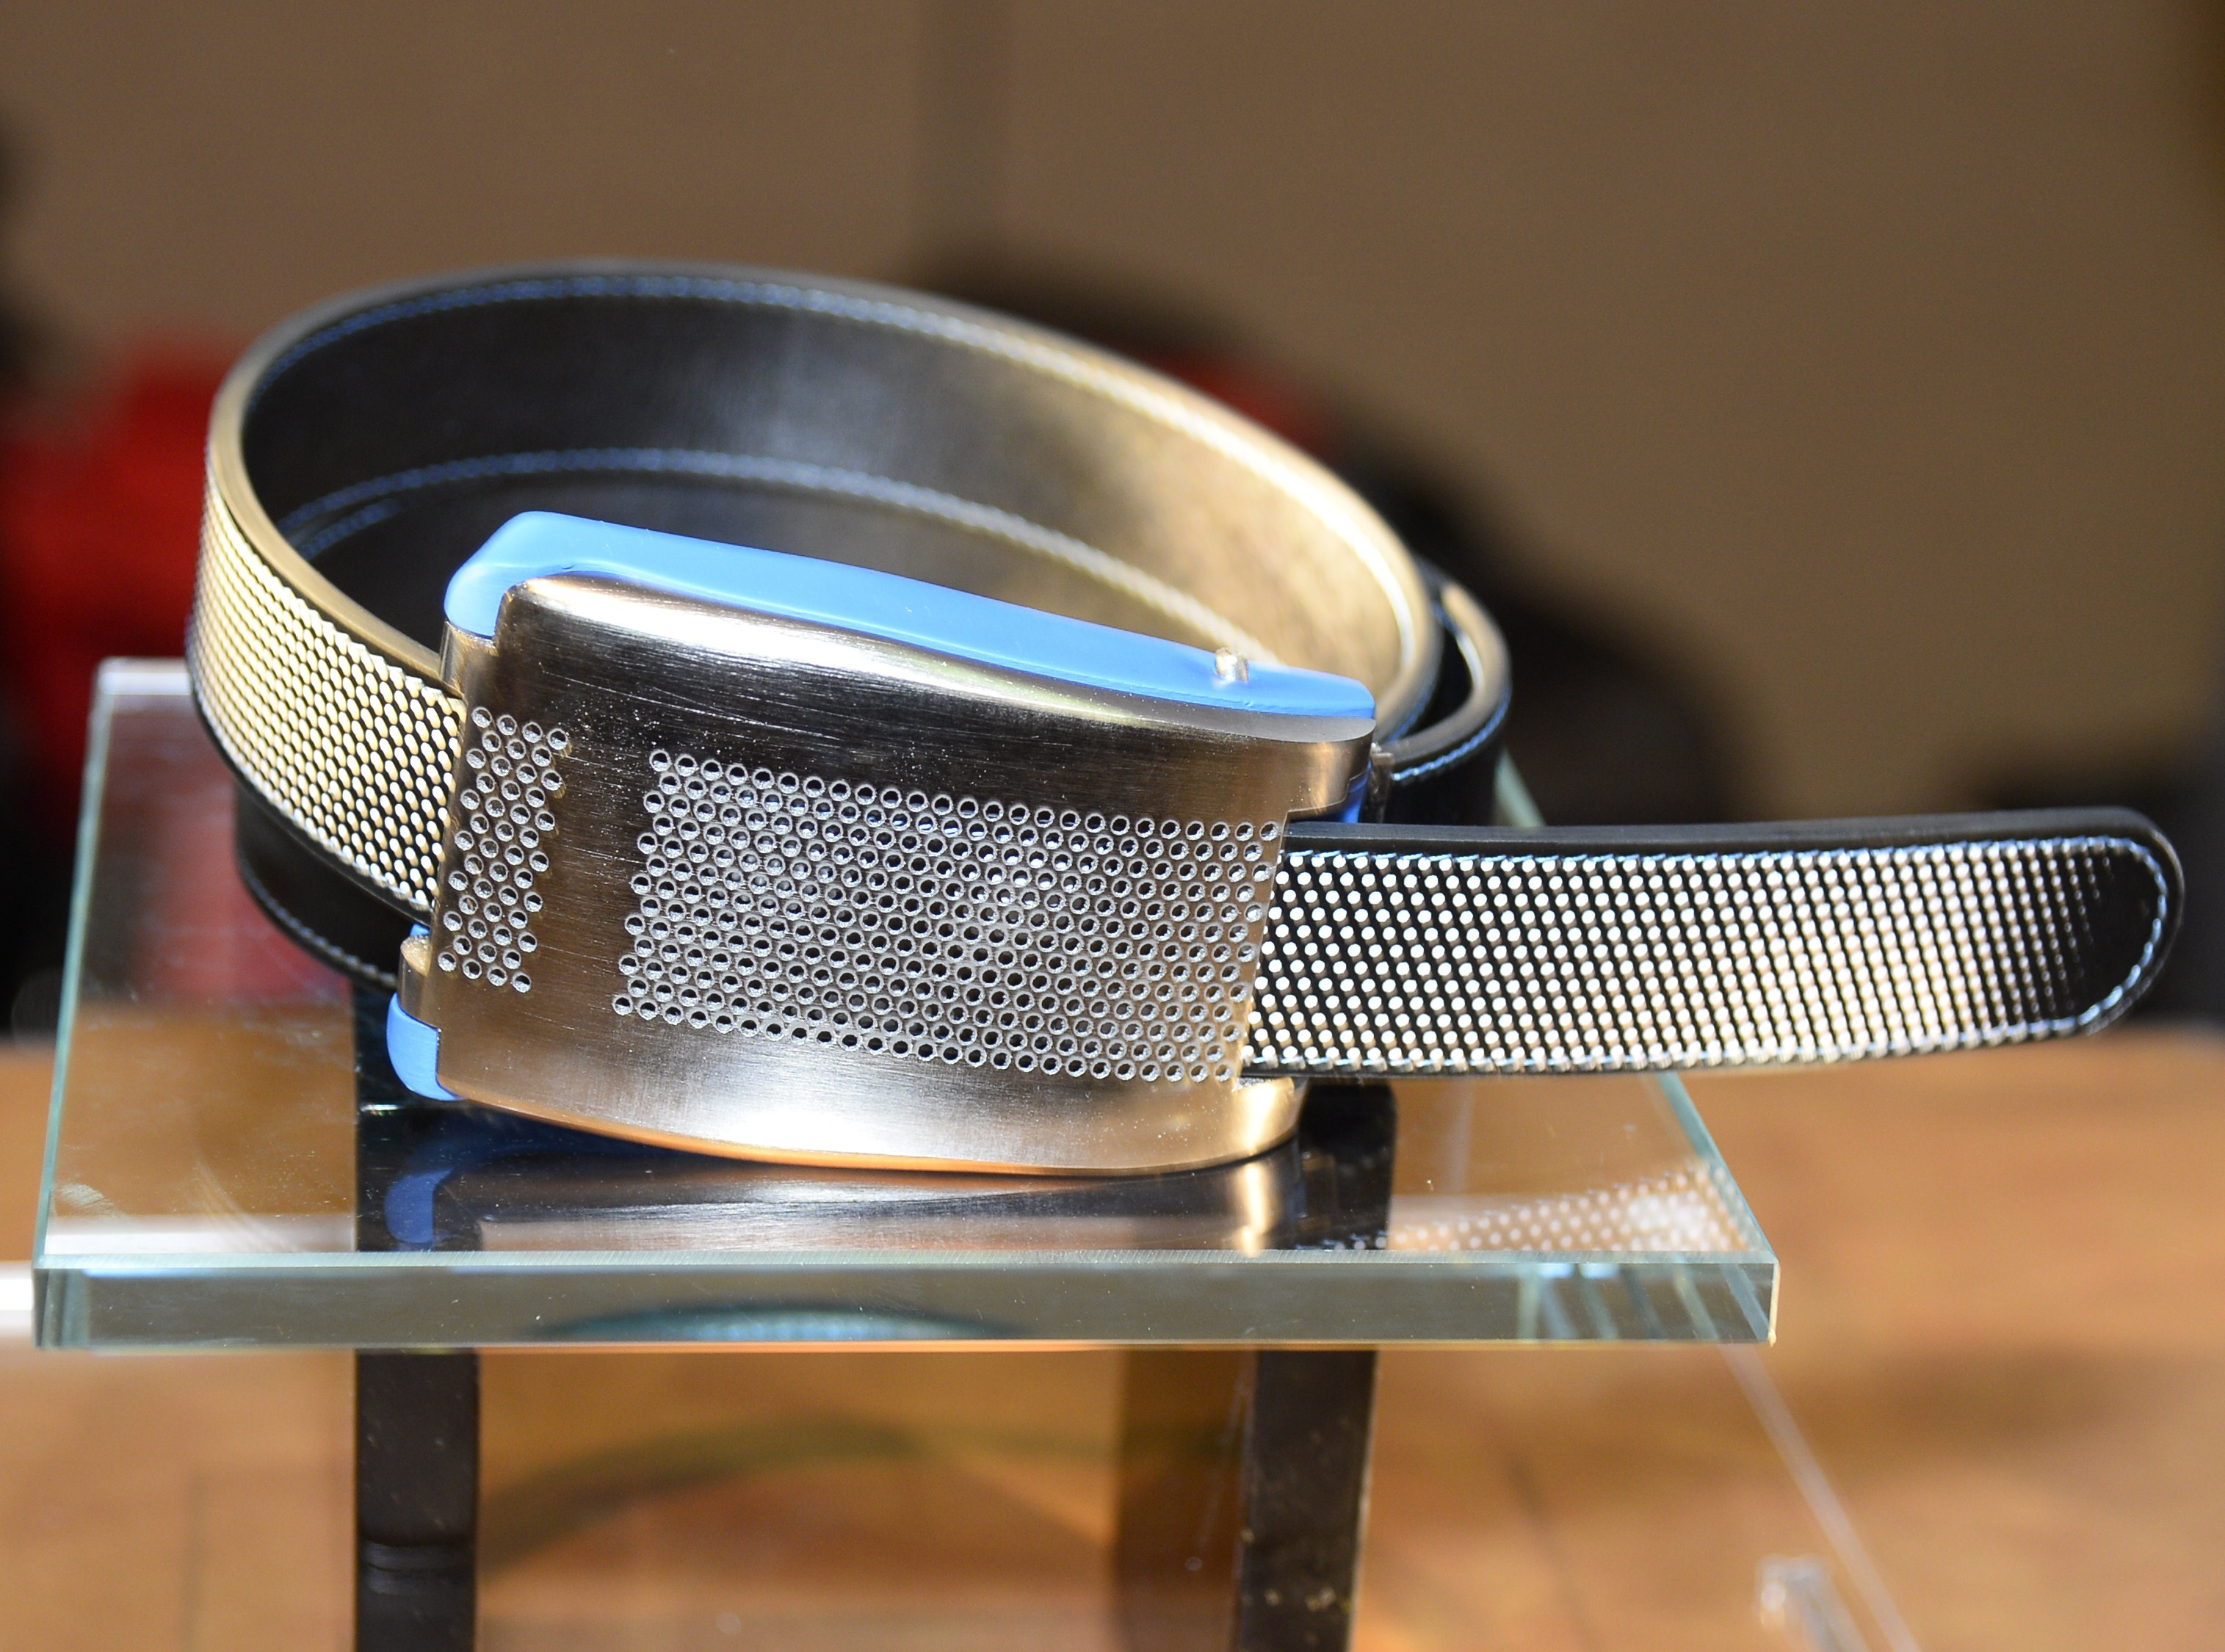 Belty, a smart belt from Paris-based Emiota, is displayed at the 2015 Consumer Electronics Show on Jan. 4, 2015 in Las Vegas, Nevada.